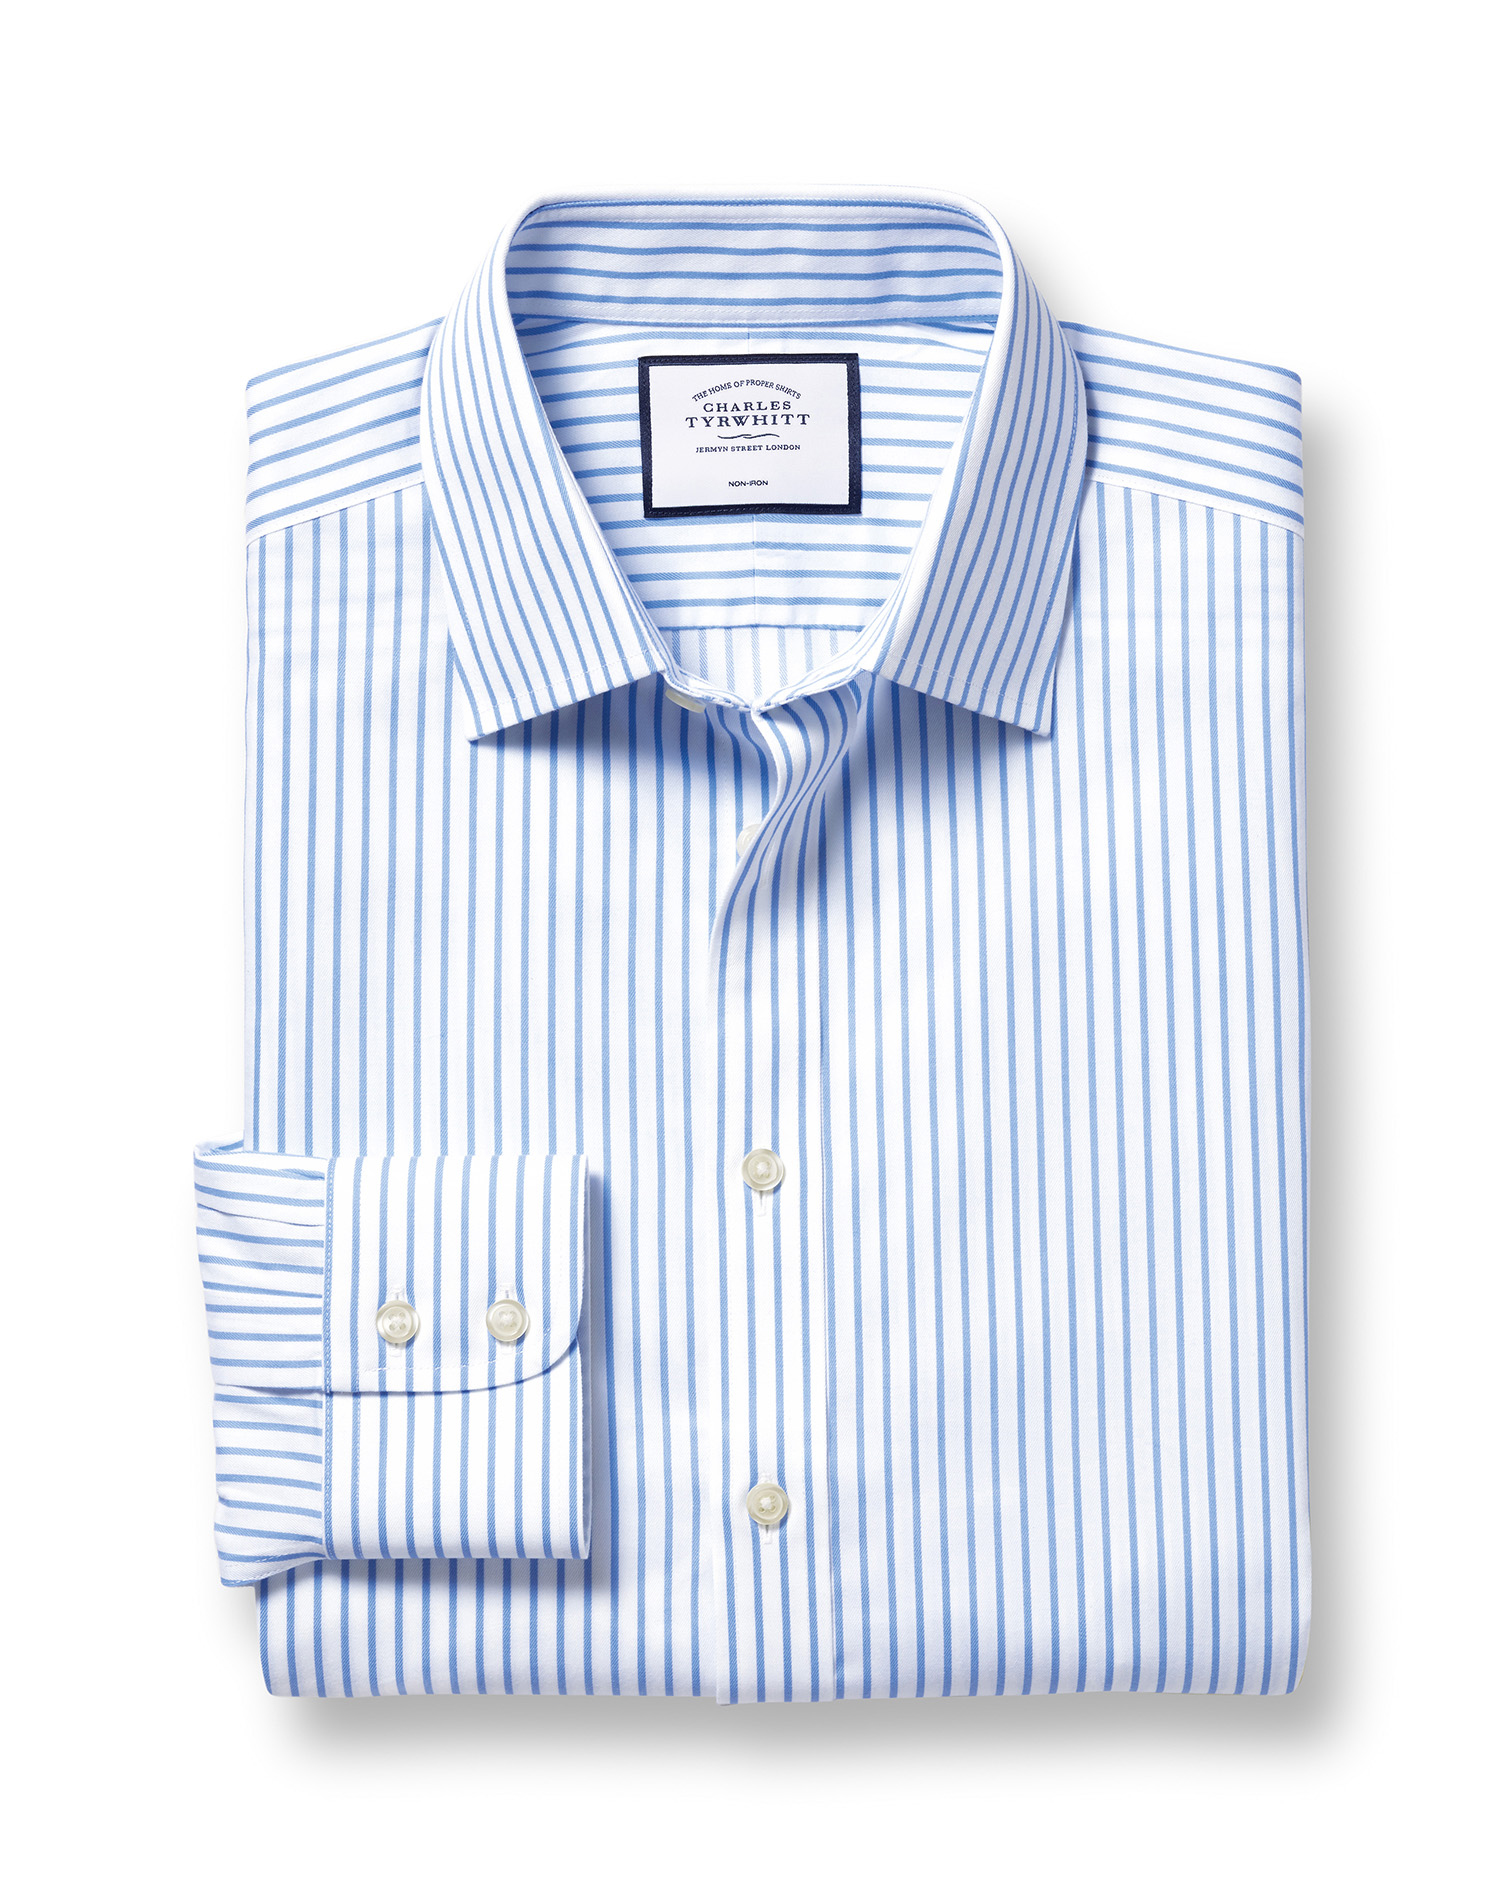 Classic Fit Non-Iron Sky Blue Stripe Twill Cotton Formal Shirt Single Cuff Size 17/38 by Charles Tyr